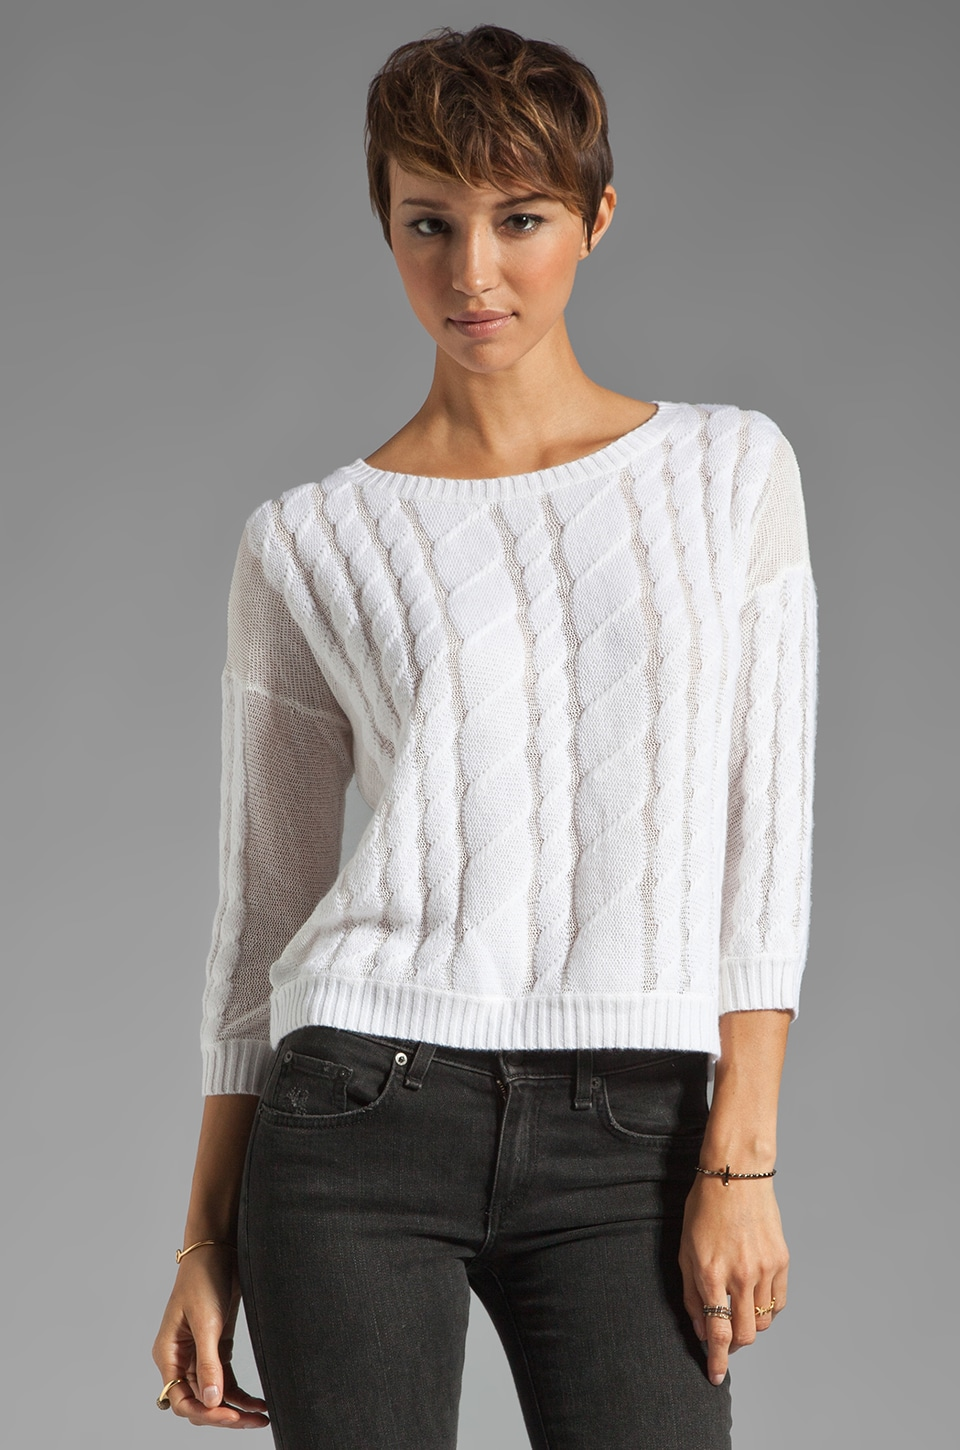 Autumn Cashmere Sheer Cable Pullover in White